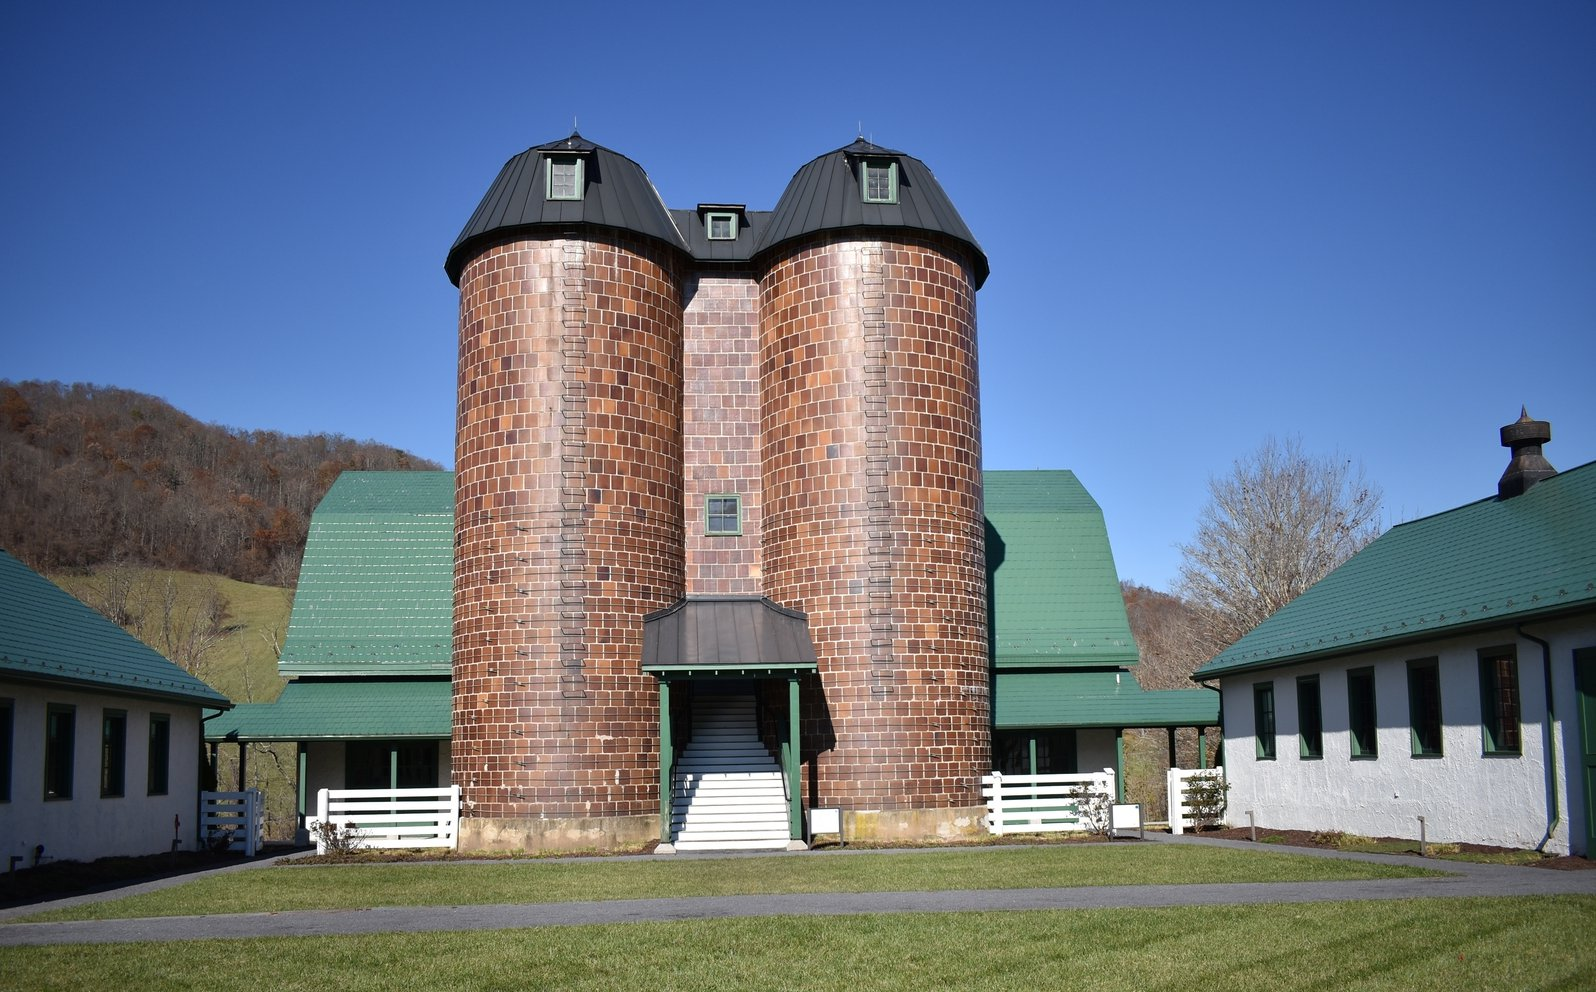 Homestead Dairy Barns